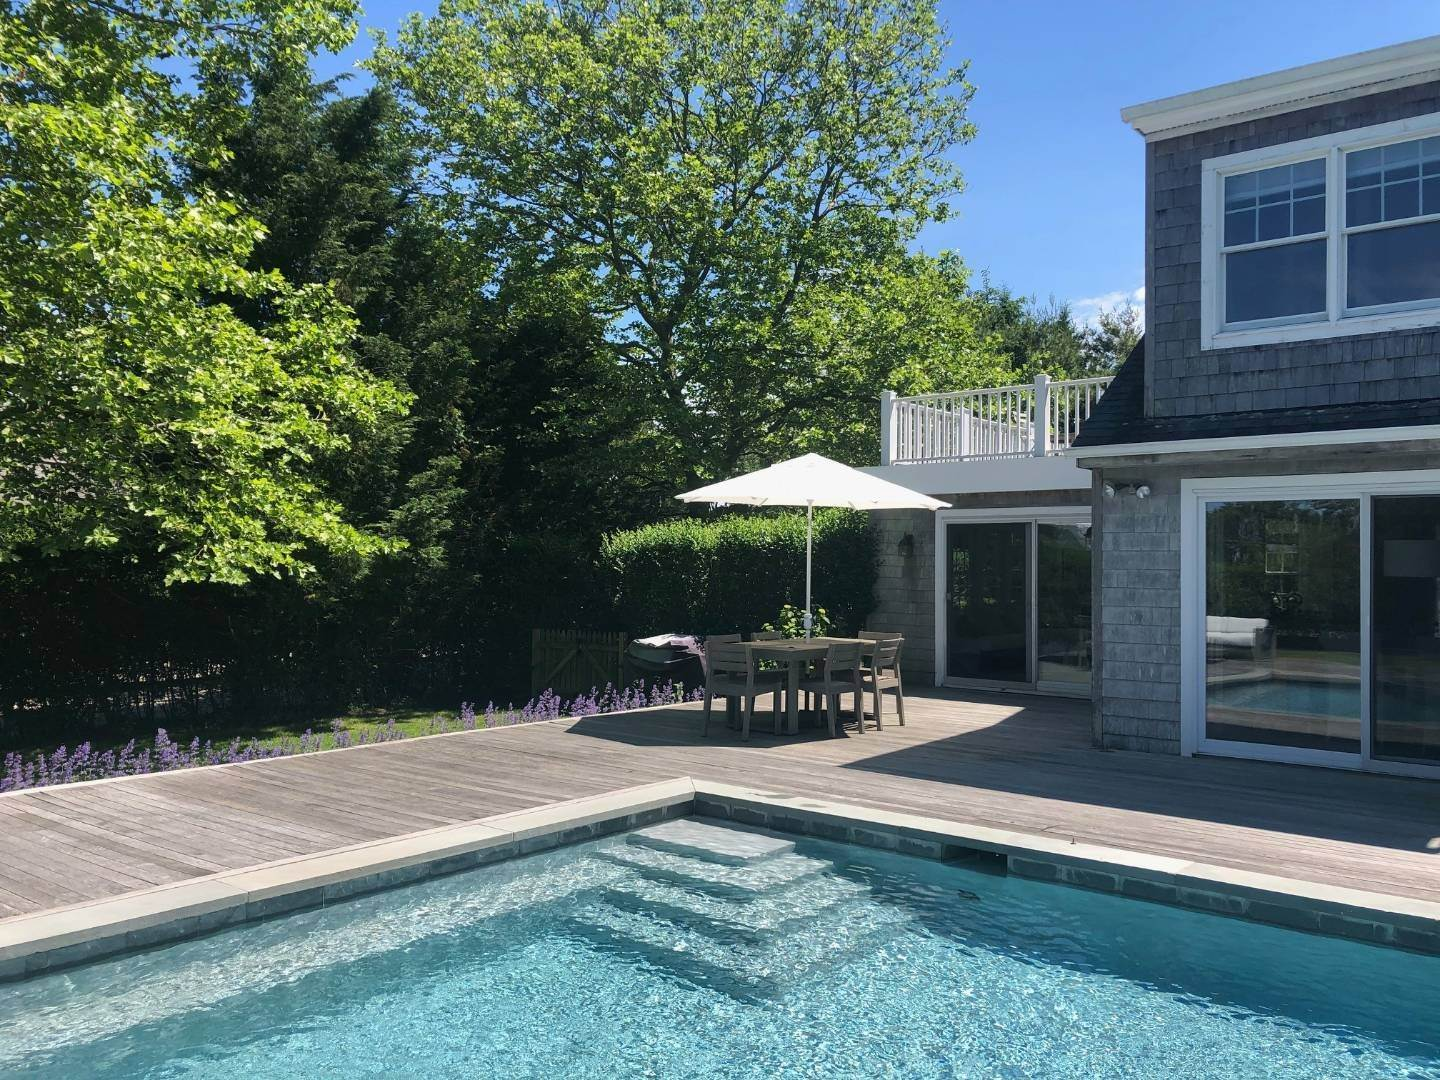 3. Single Family Home at Crisp Clean Hamptons Home Water Mill, NY 11968